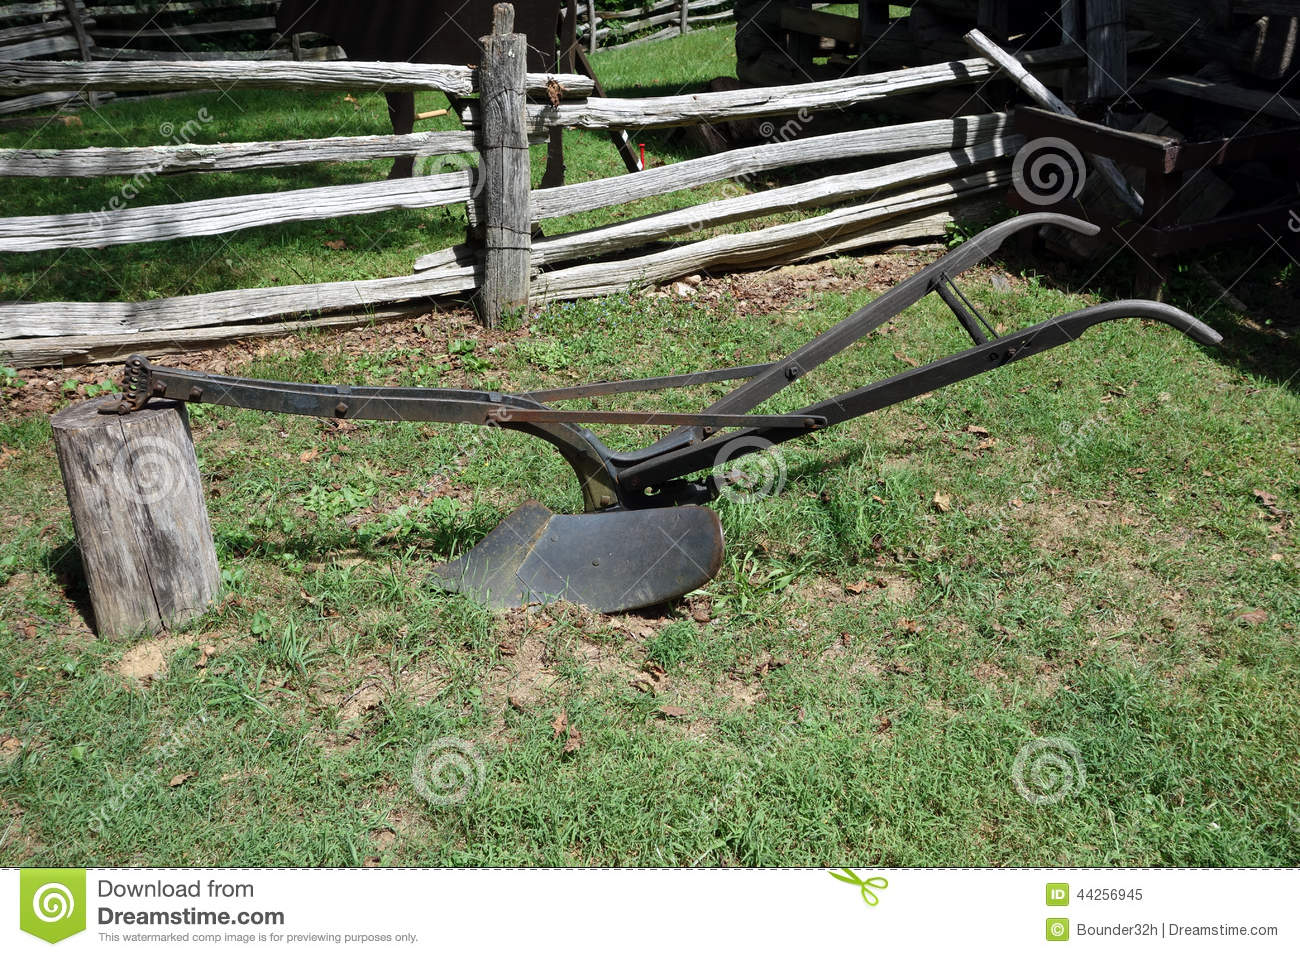 Antique Horse Drawn Plow Pioneer Days Farming Implement Display Historic Farm Virginia